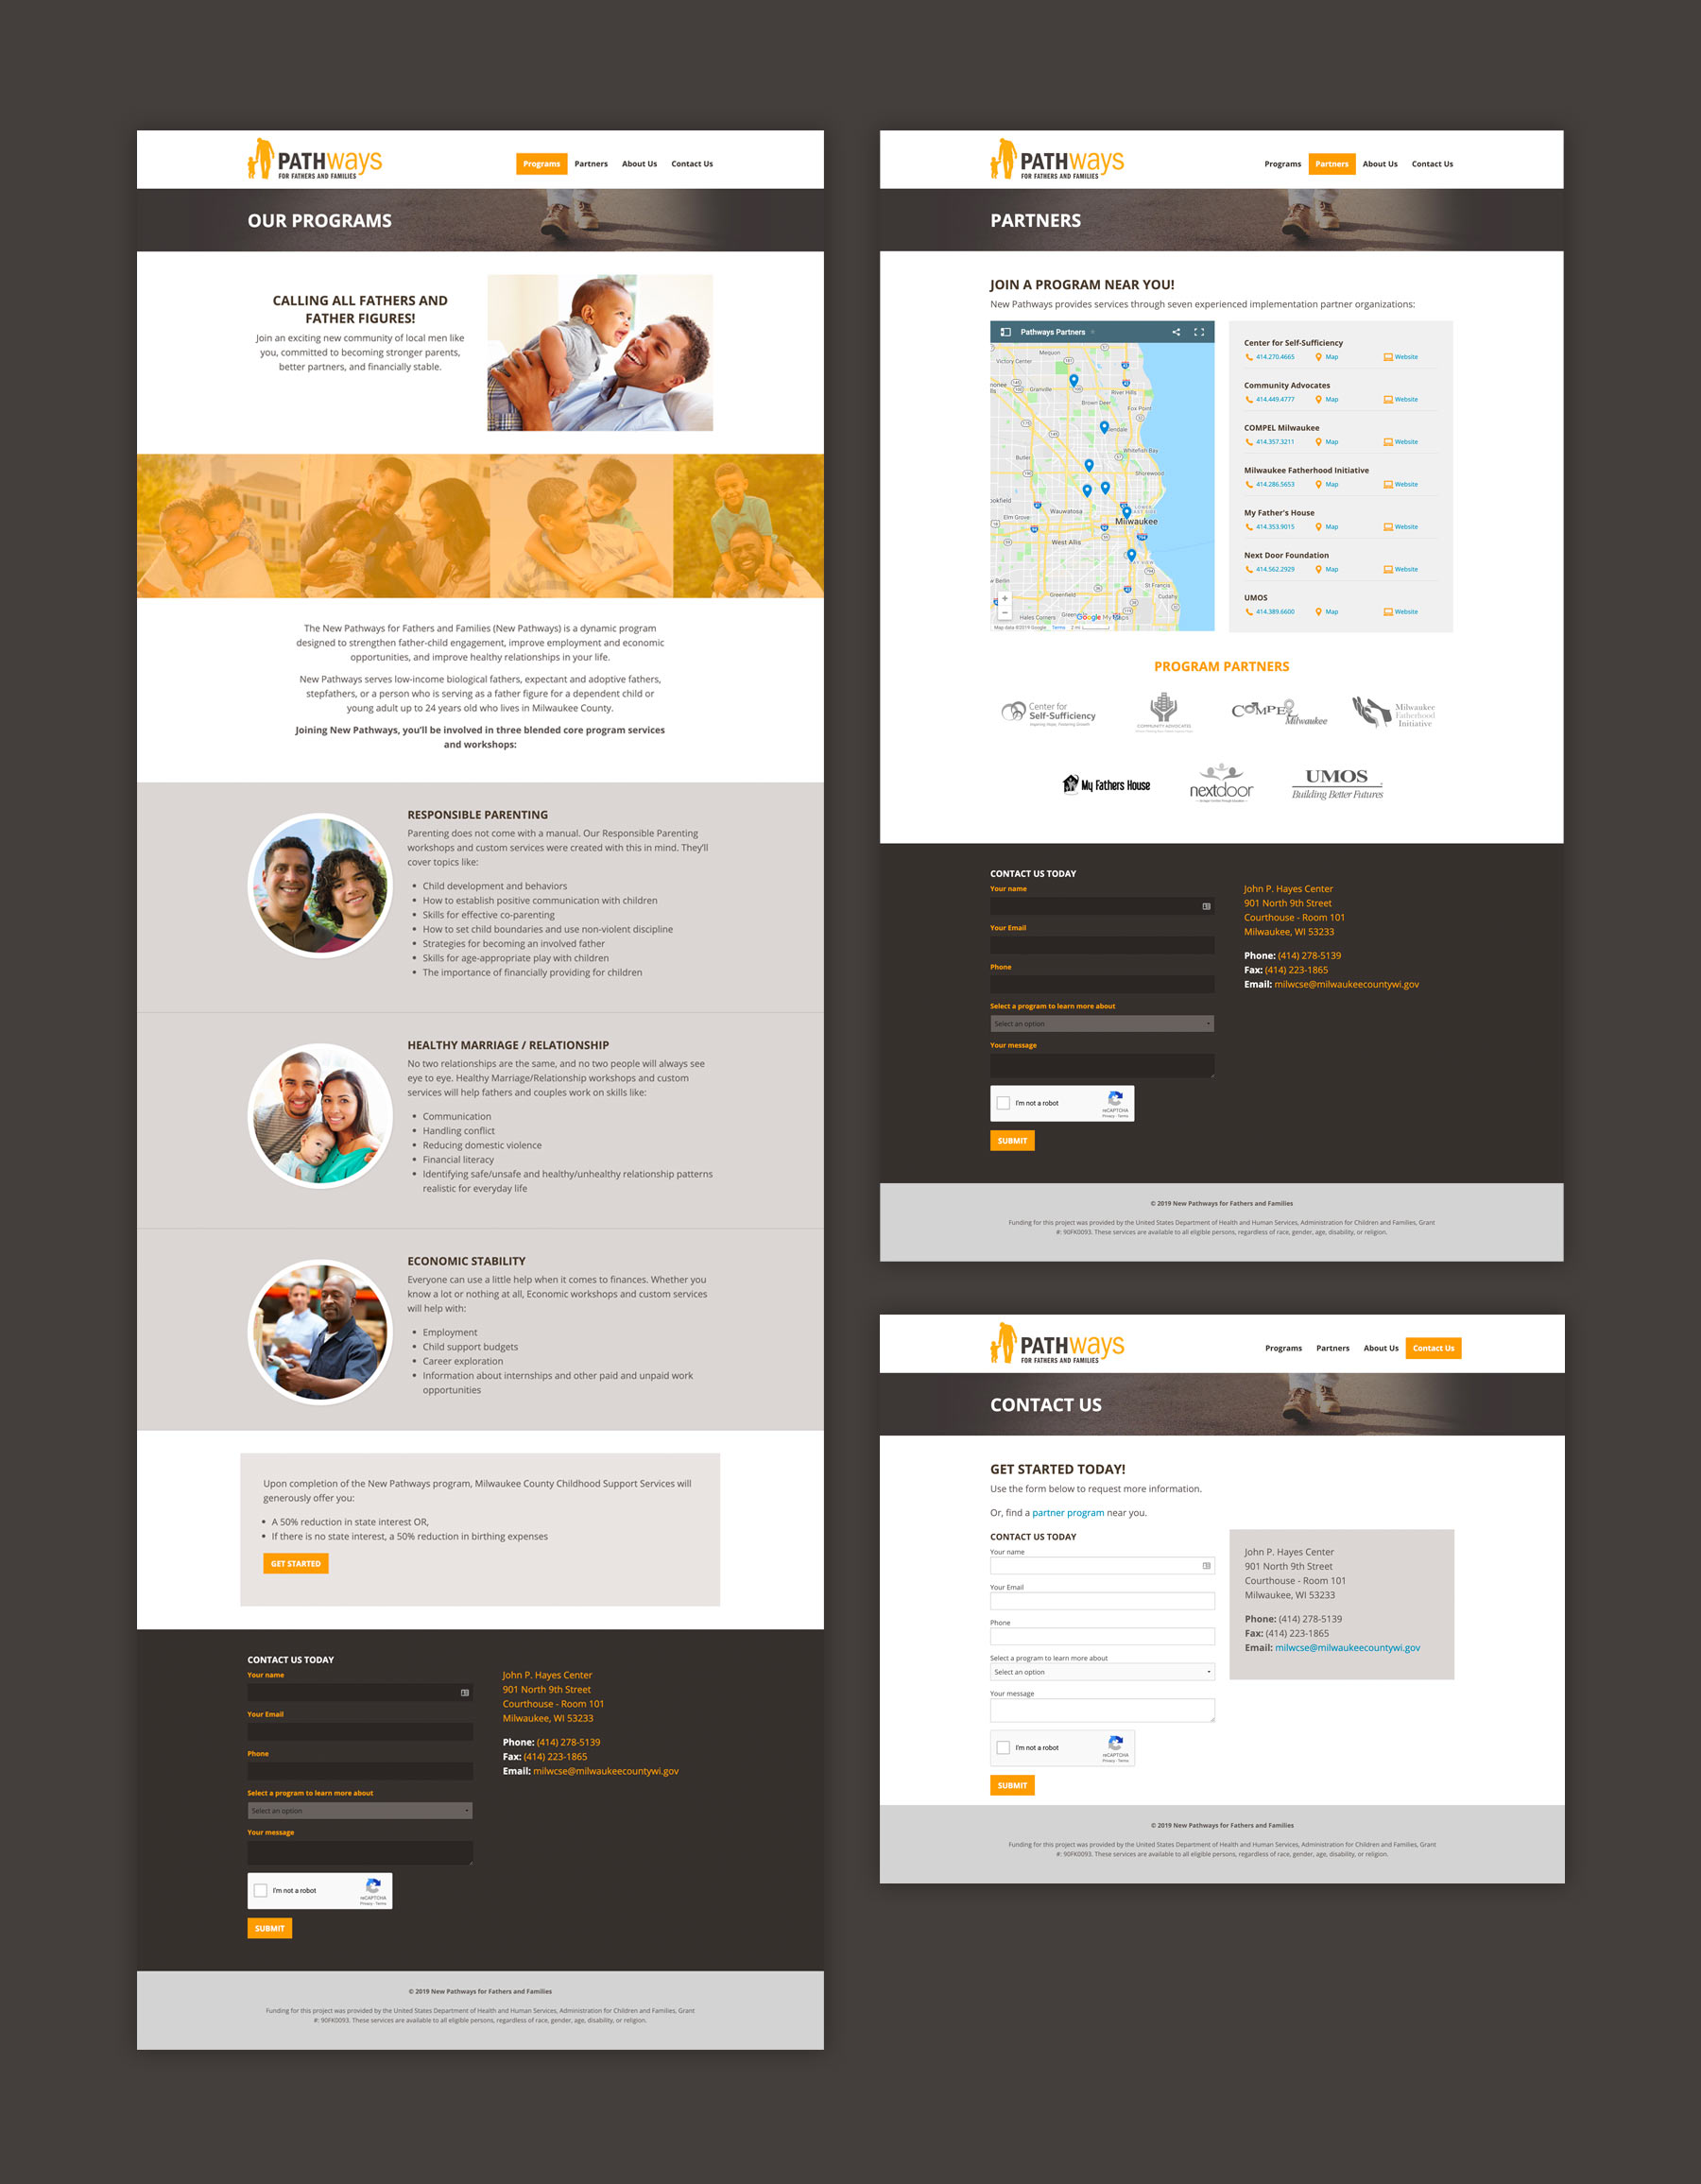 Secondary page design